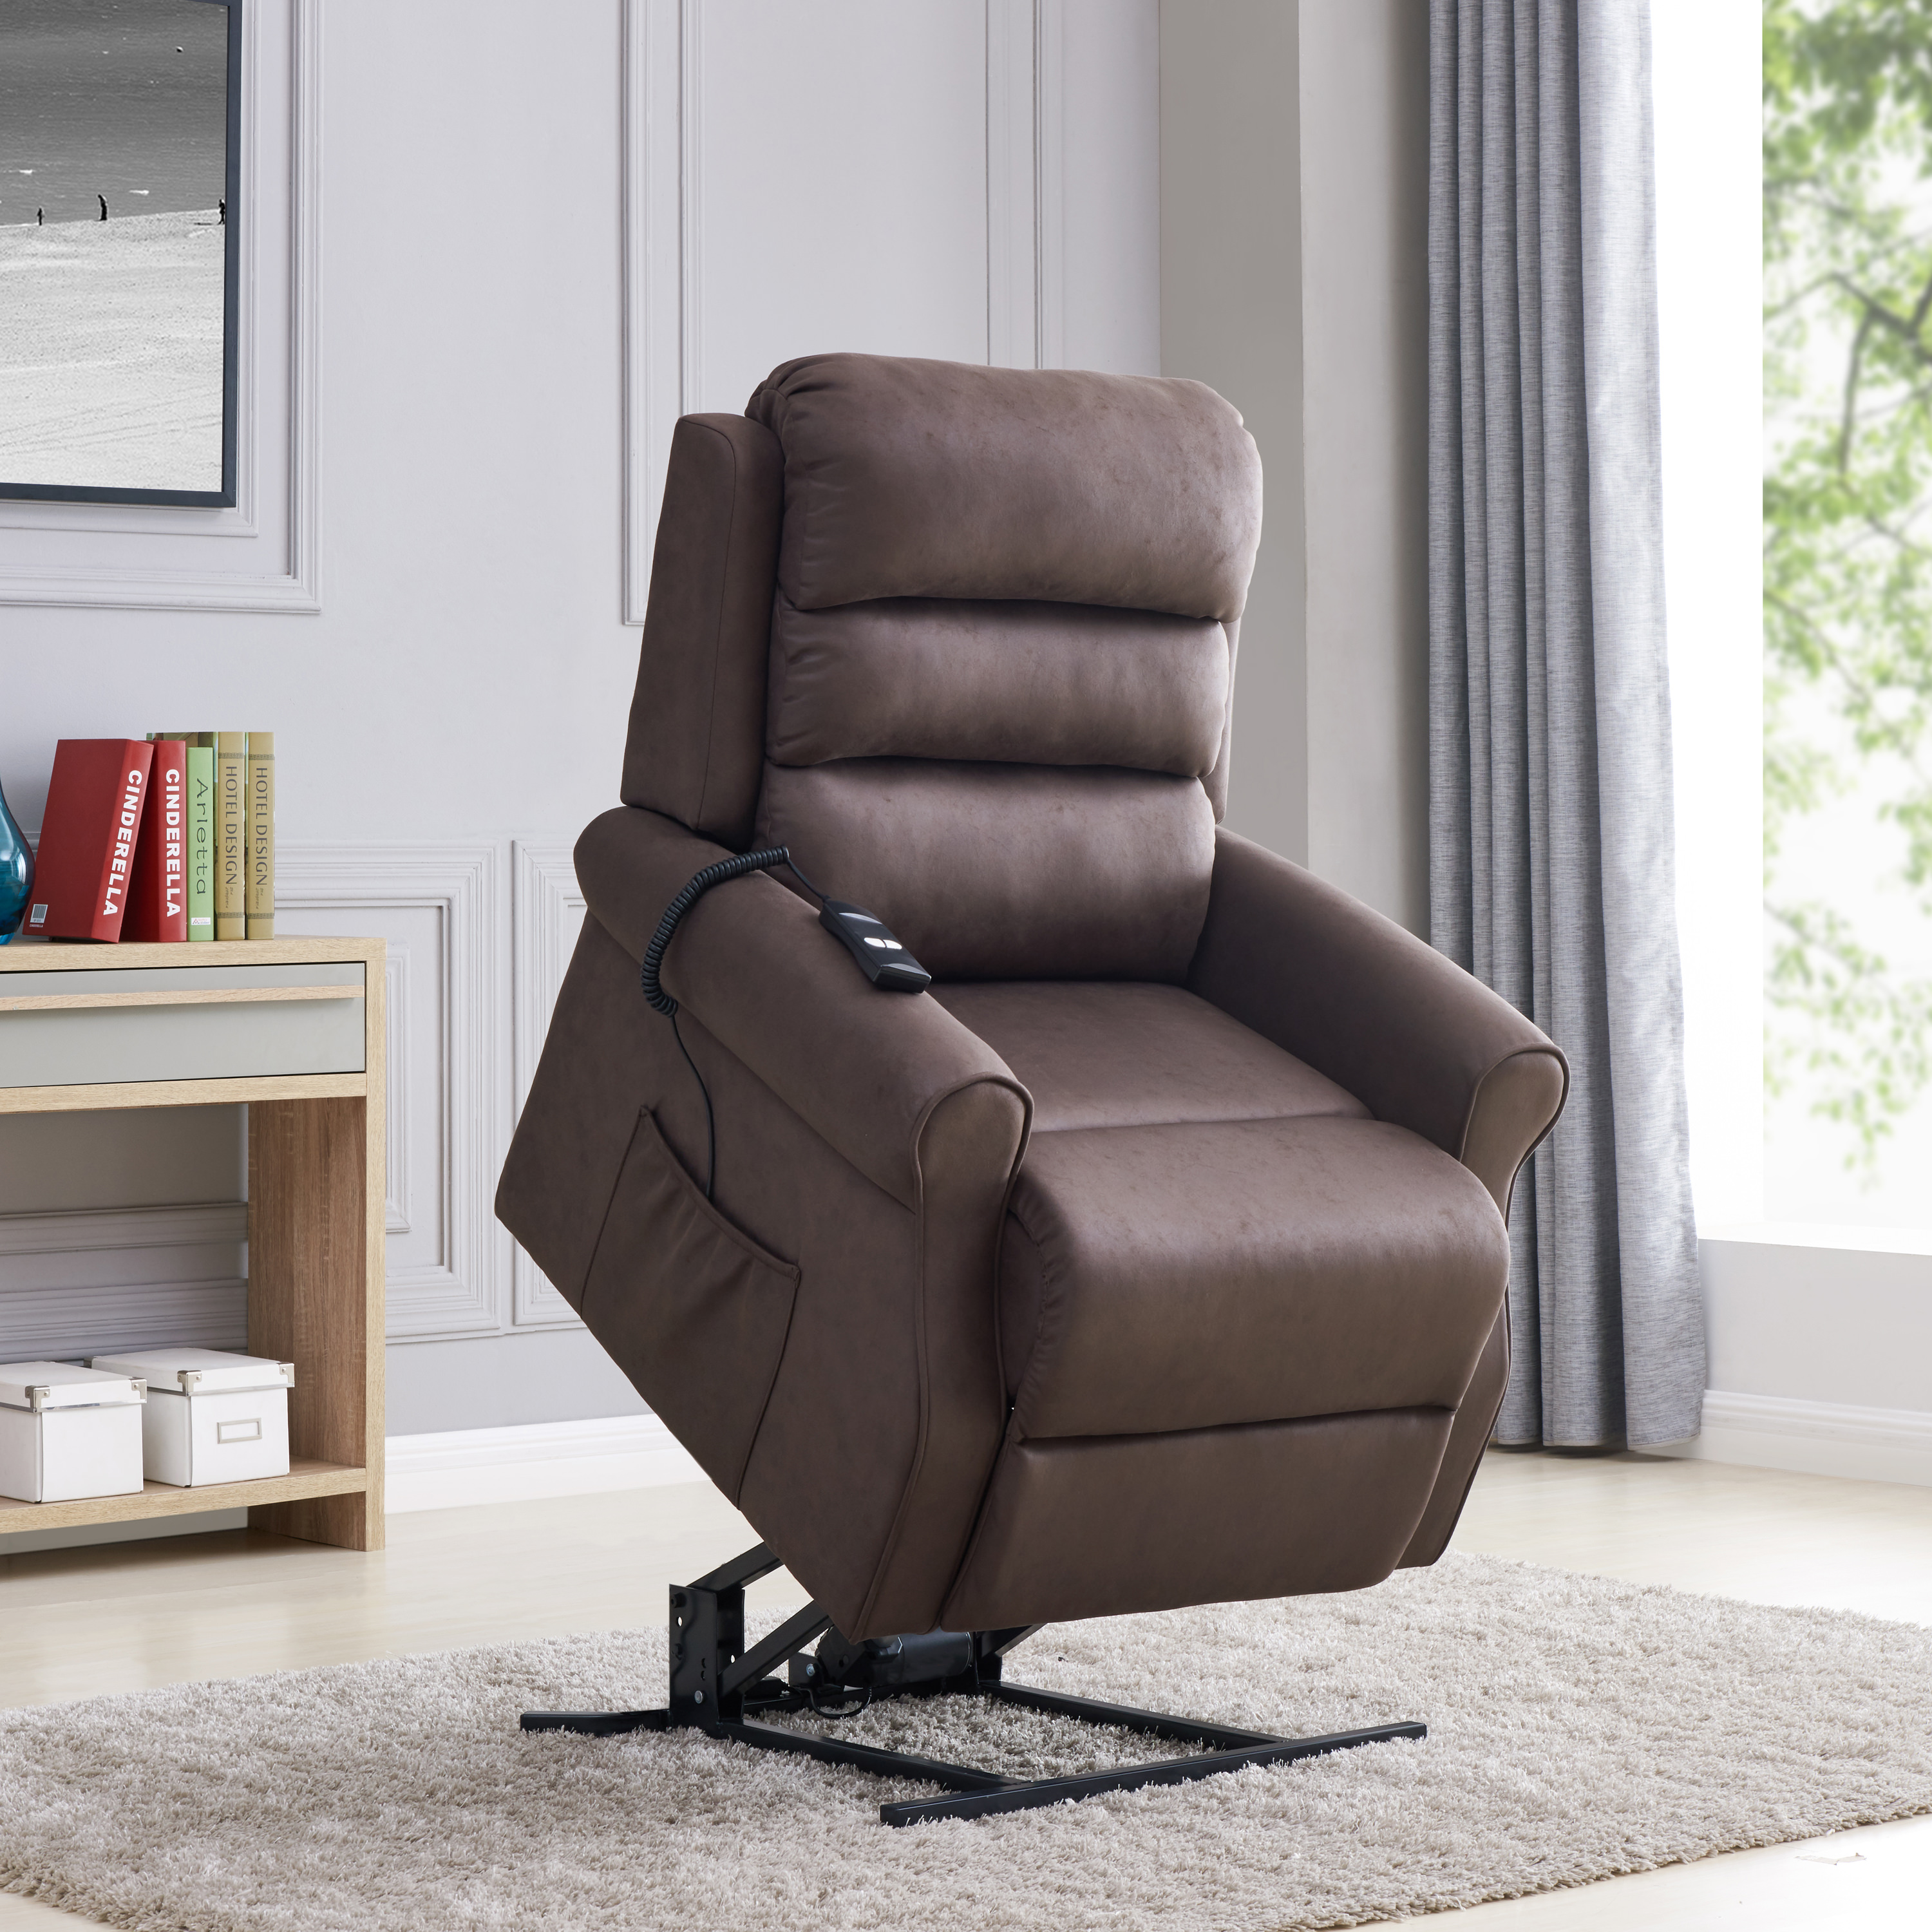 home meridian lift chair repair slipcovered dining chairs recliners walmart com product image linder power recliner and in chocolate nubuck